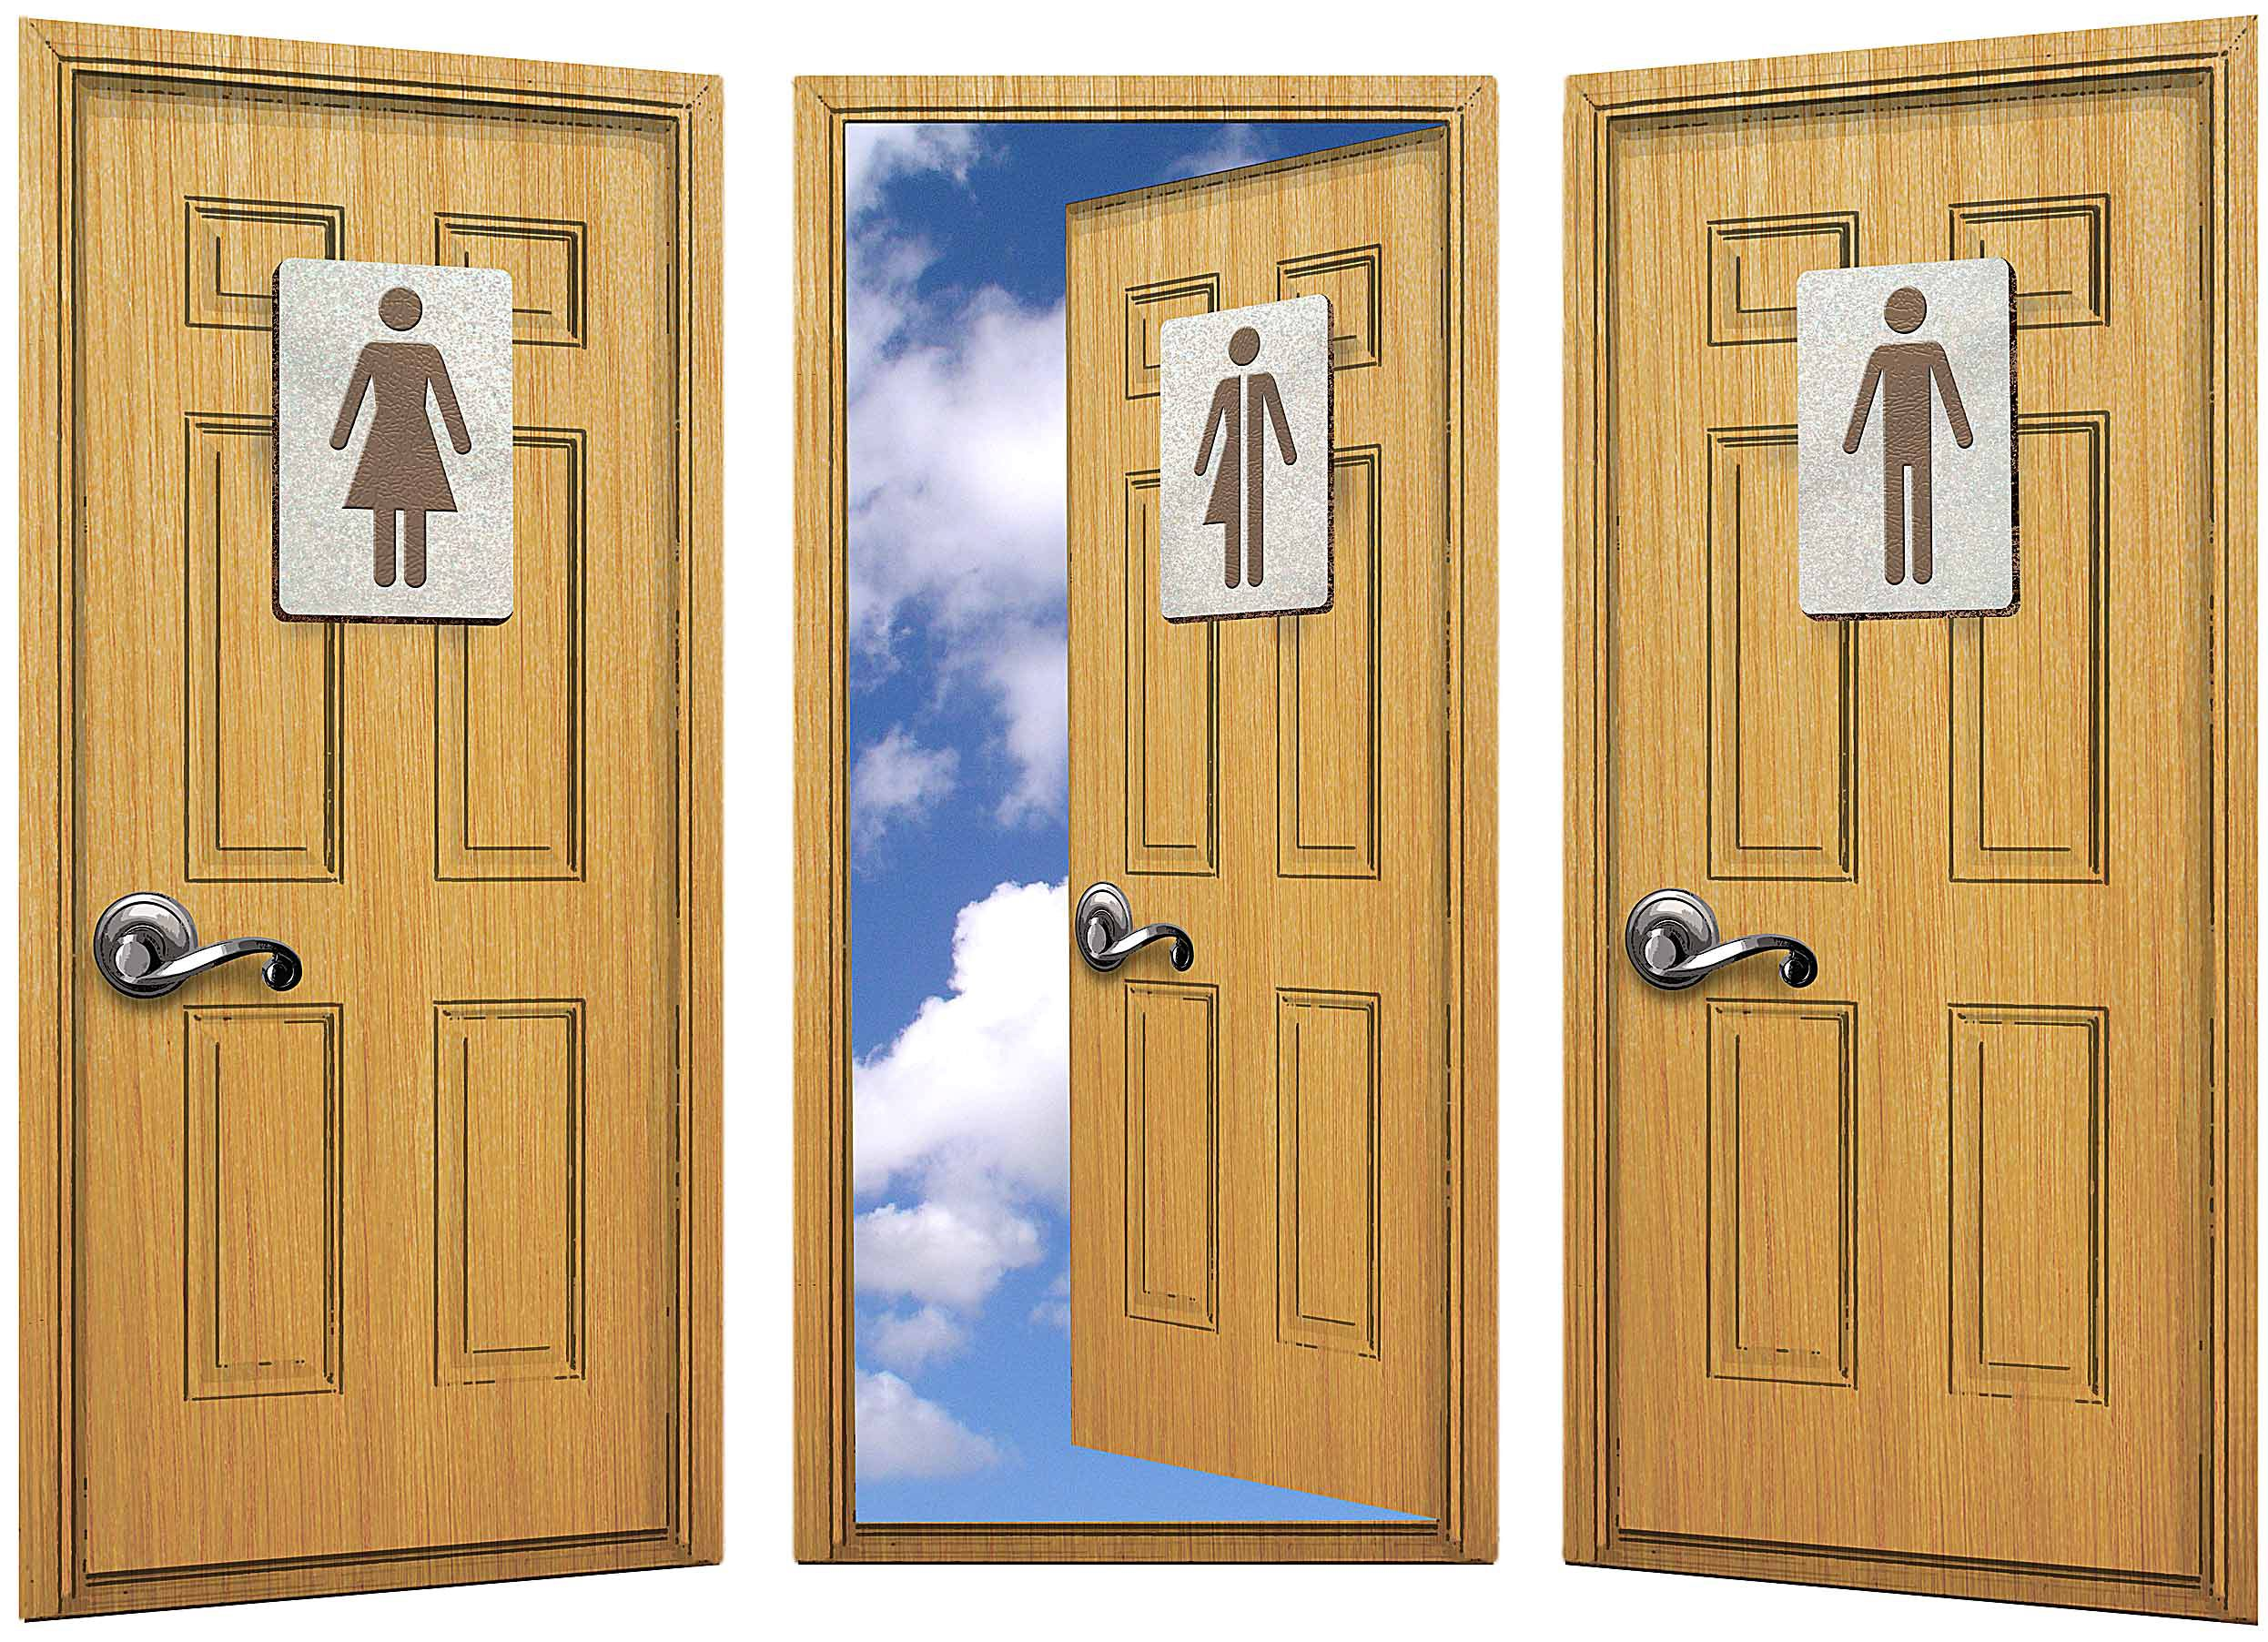 Transgenders In Washington State To Use Restrooms Based On Identity Not Anatomy Rule